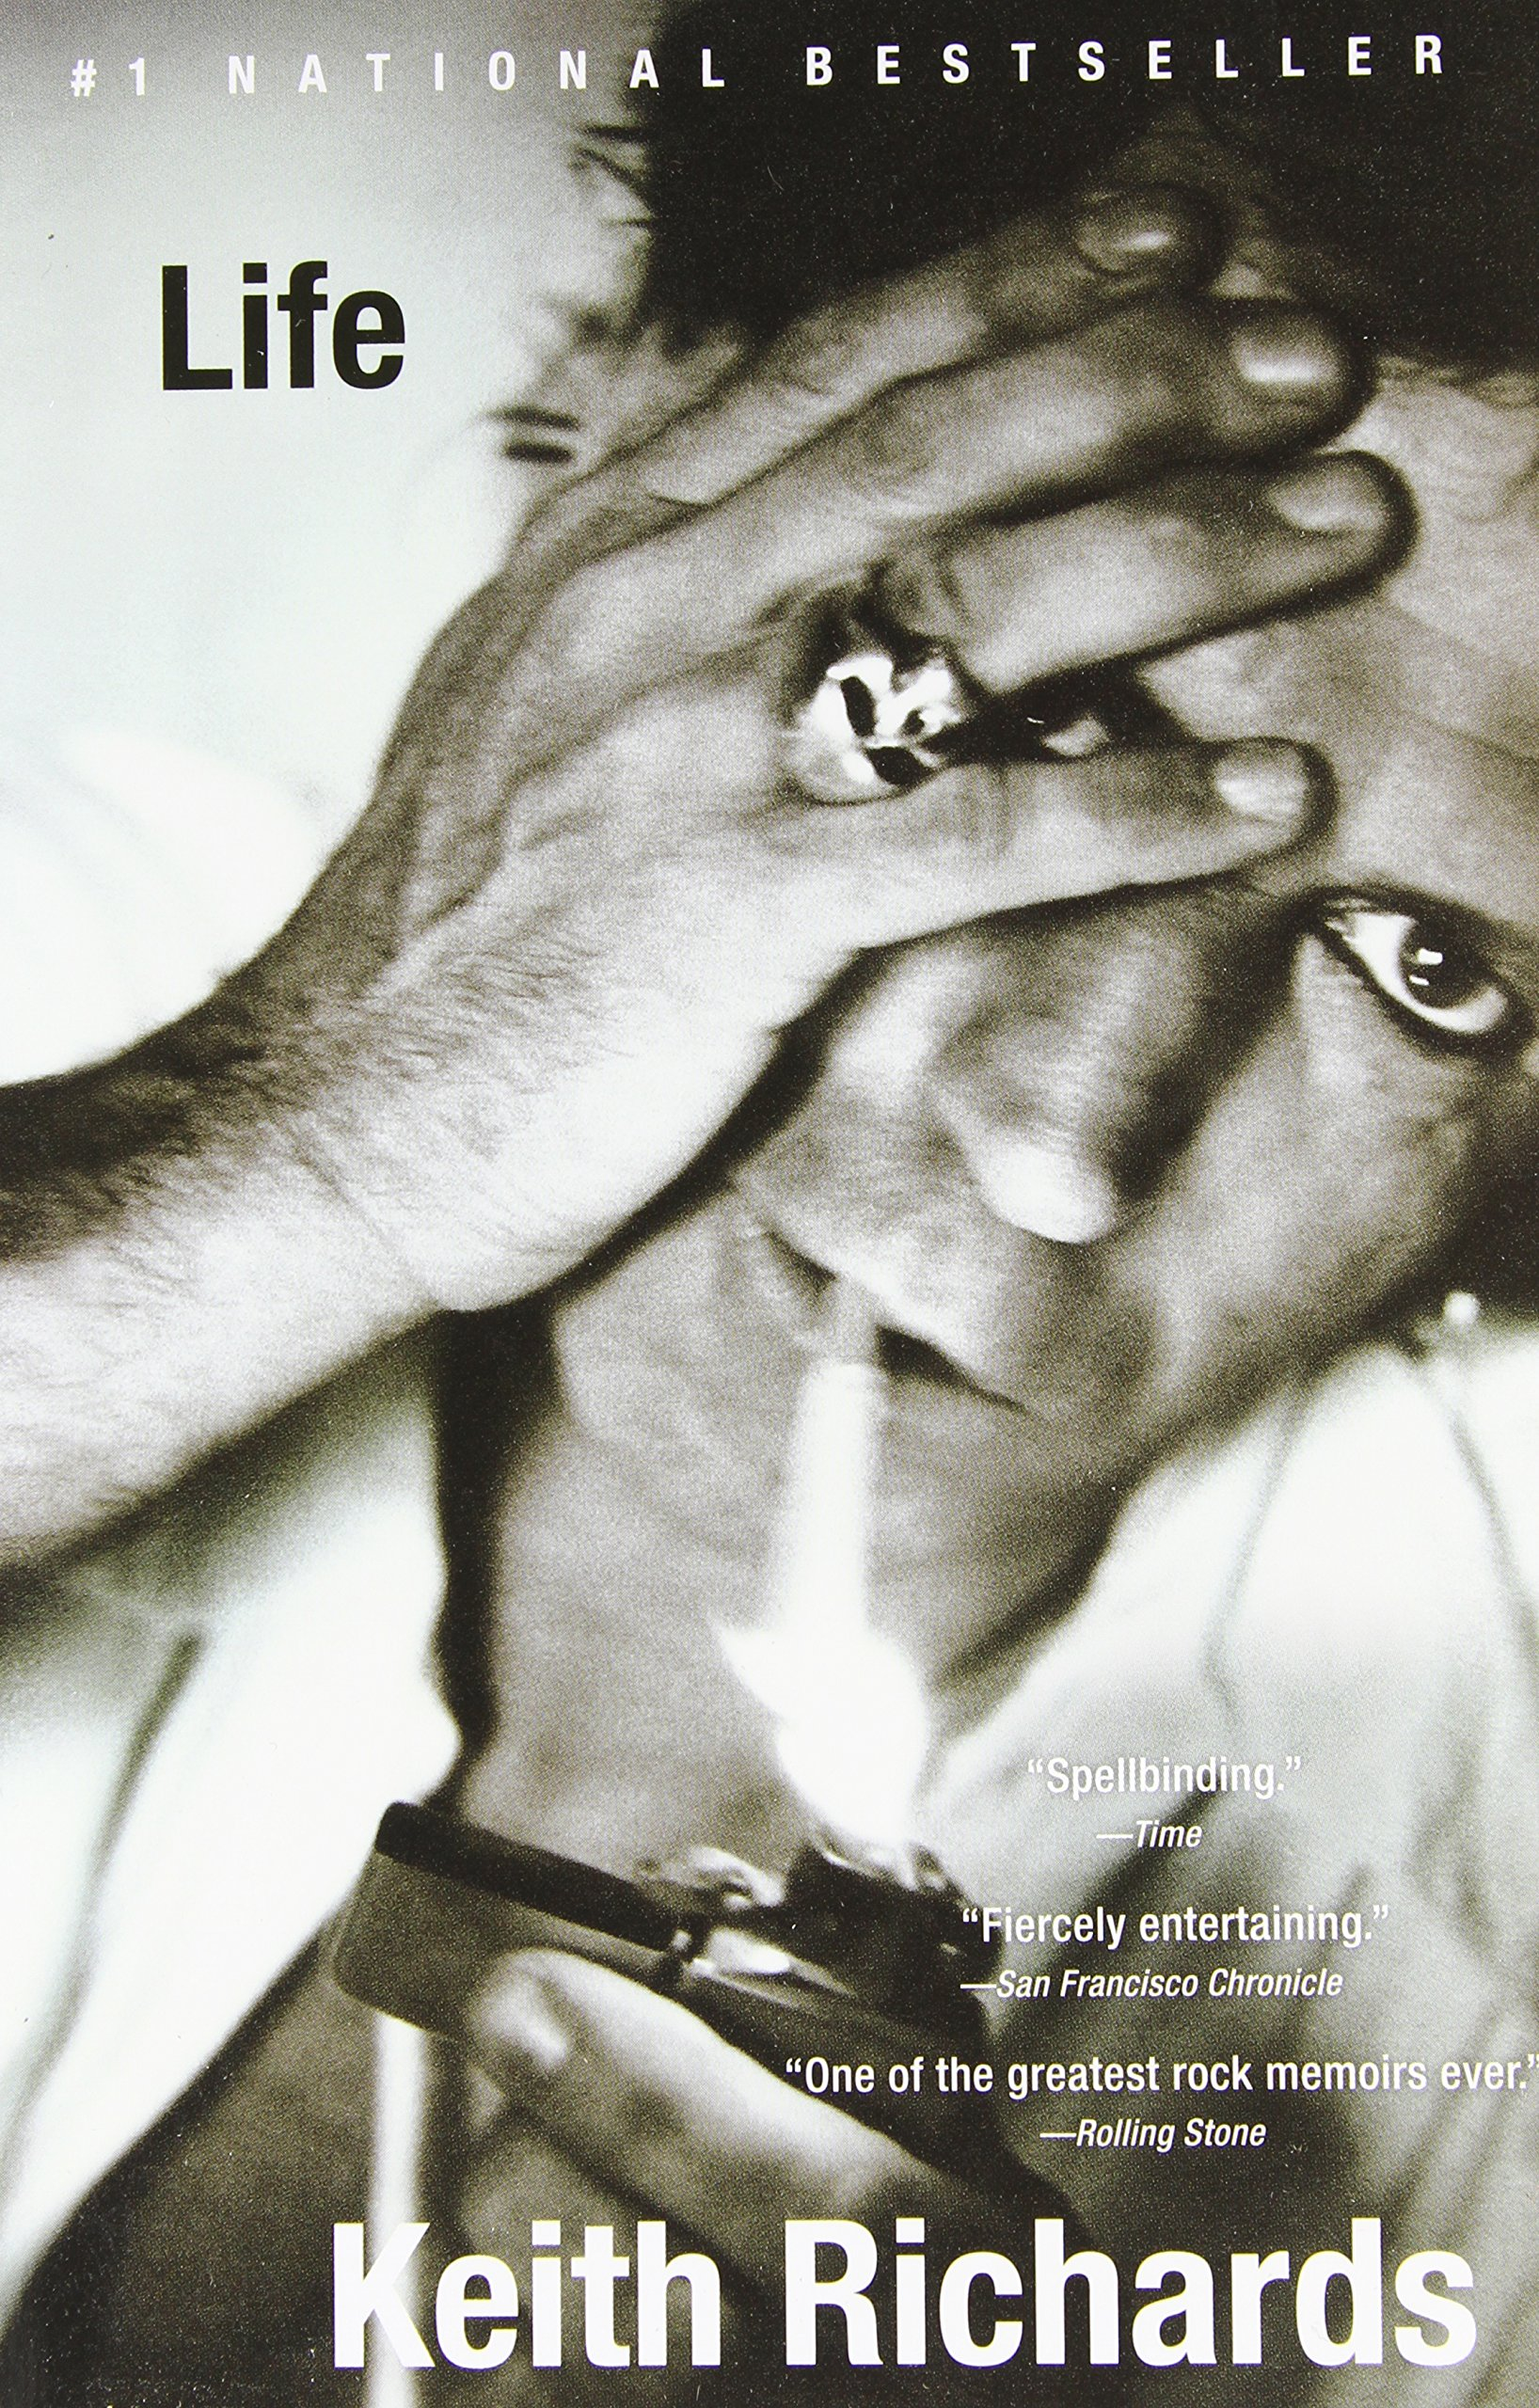 Life Biography of Keith Richards